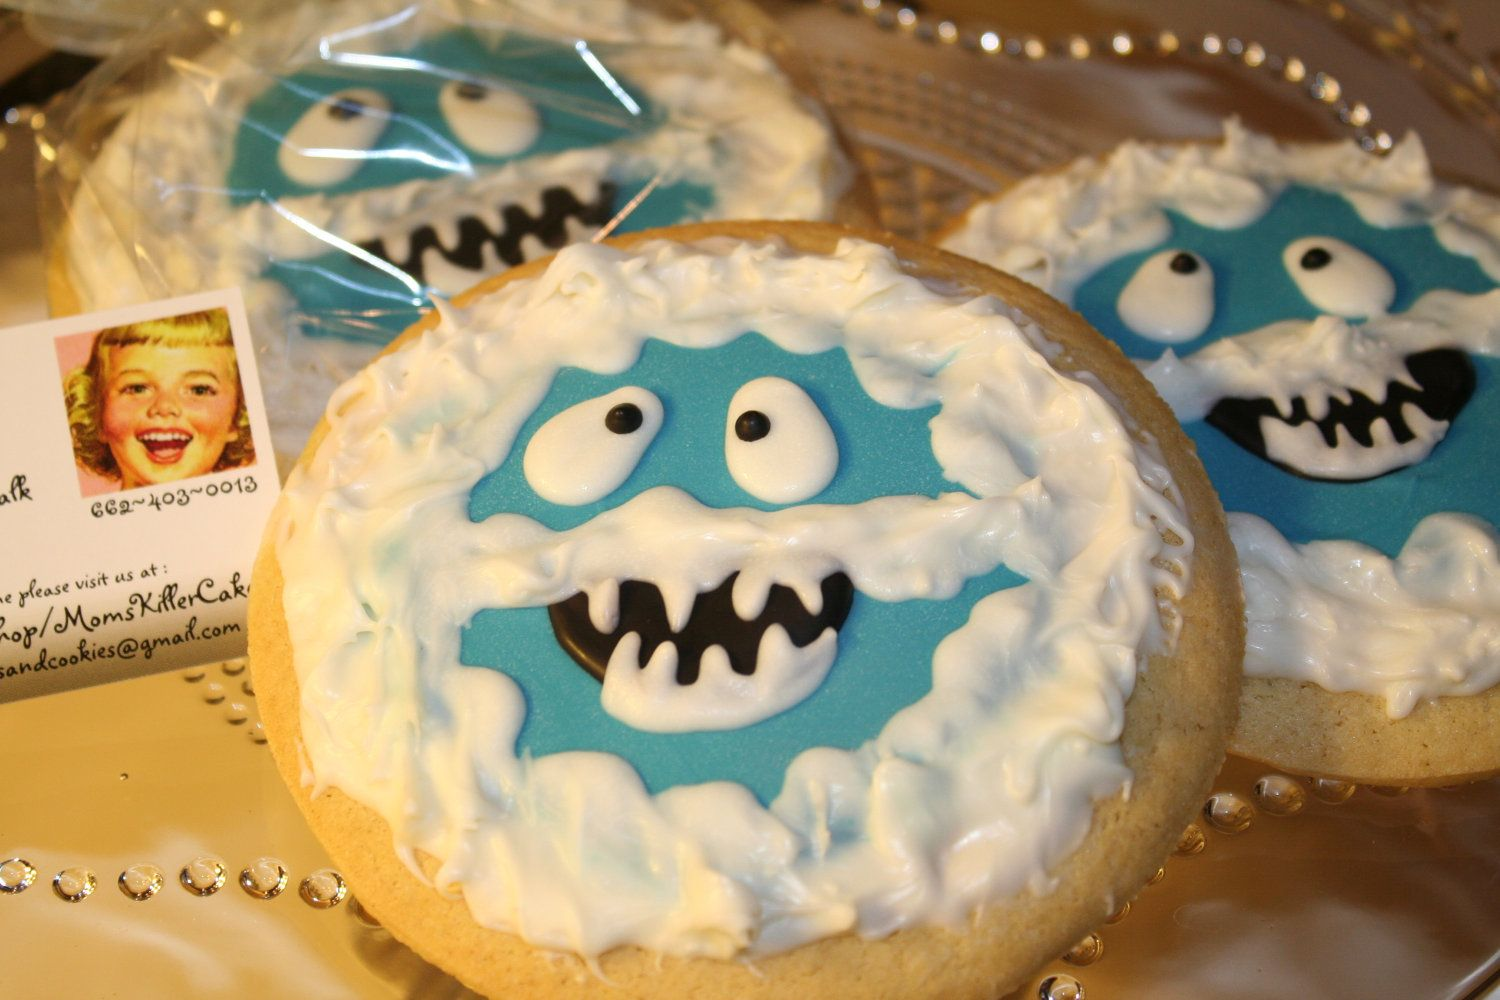 Mom S Killer Cakes Cookies Bumble The Abominable Snowman Inspired